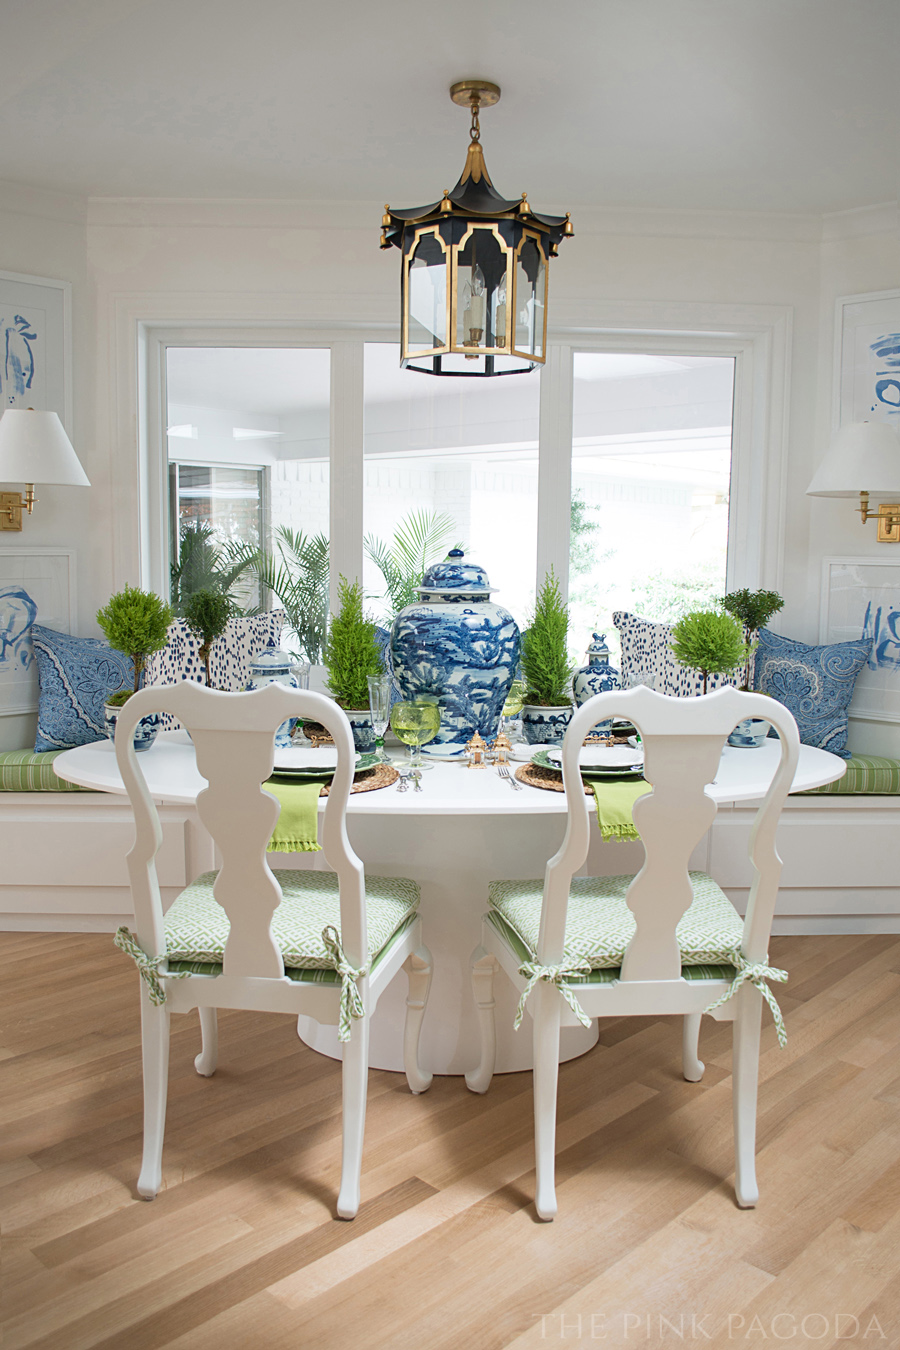 Banquette dining with blue and white created for The Pink Pagoda's One Room Challenge™. Art by Christina Baker, Coleen & Company pagoda lantern, and tabletop styling by Susan Palma.